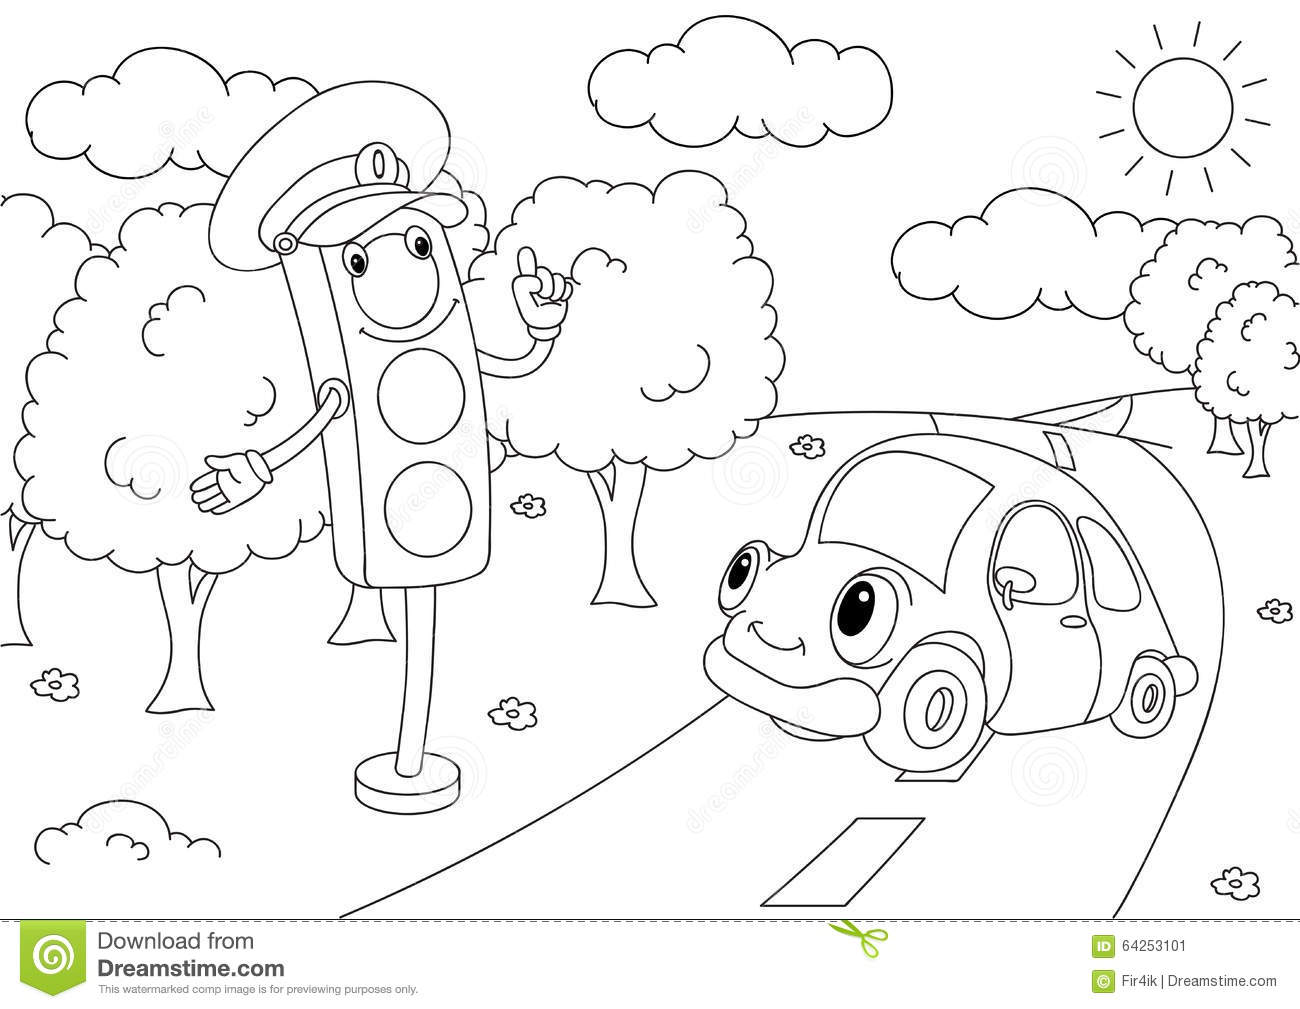 Simple Street Light Coloring Pages